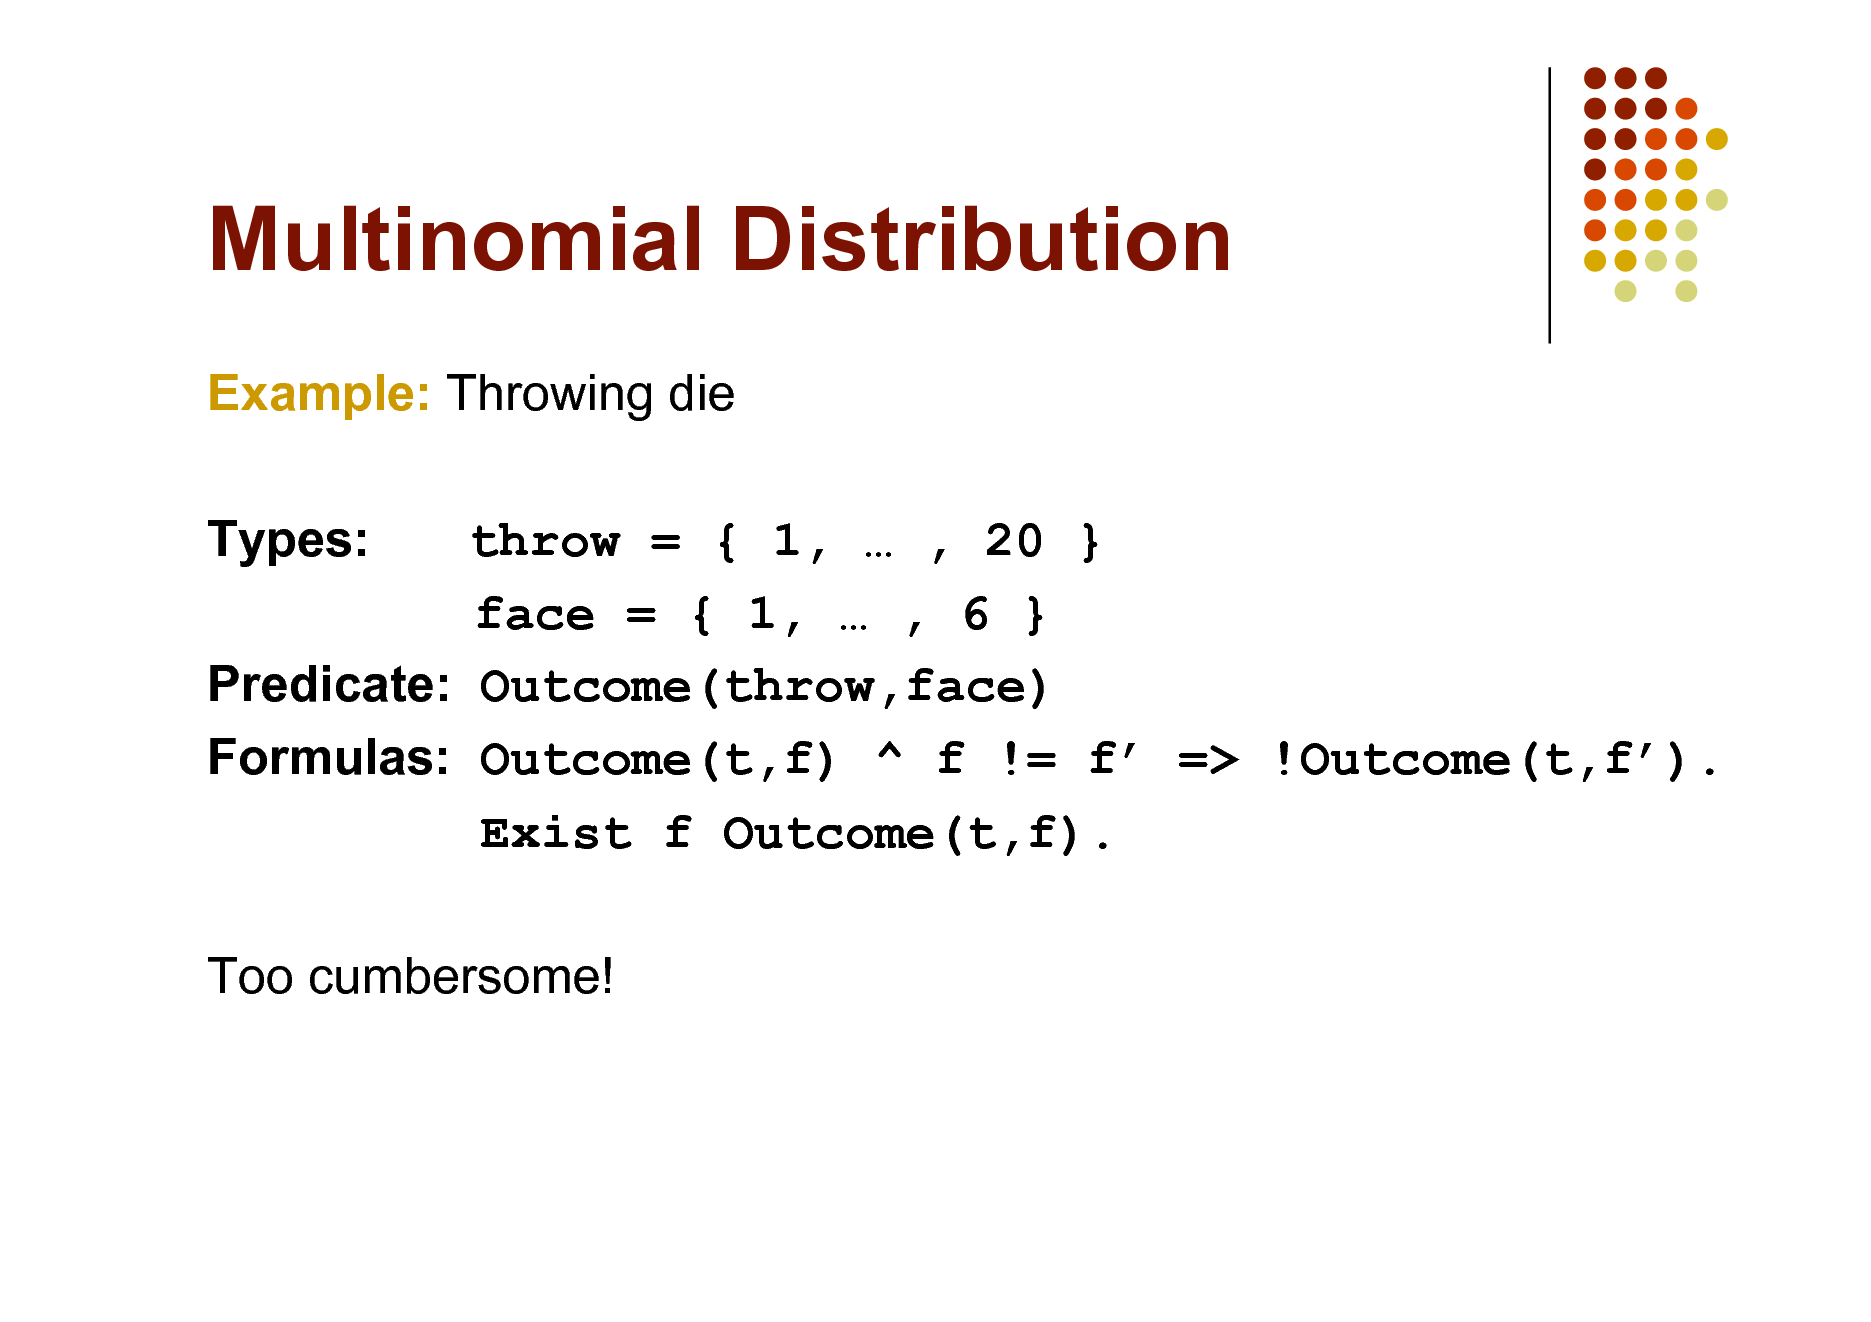 Slide: Multinomial Distribution Example: Throwing die Types: throw = { 1,  , 20 } face = { 1,  , 6 } Predicate: Outcome(throw,face) Formulas: Outcome(t,f) ^ f != f => !Outcome(t,f). Exist f Outcome(t,f). Too cumbersome!